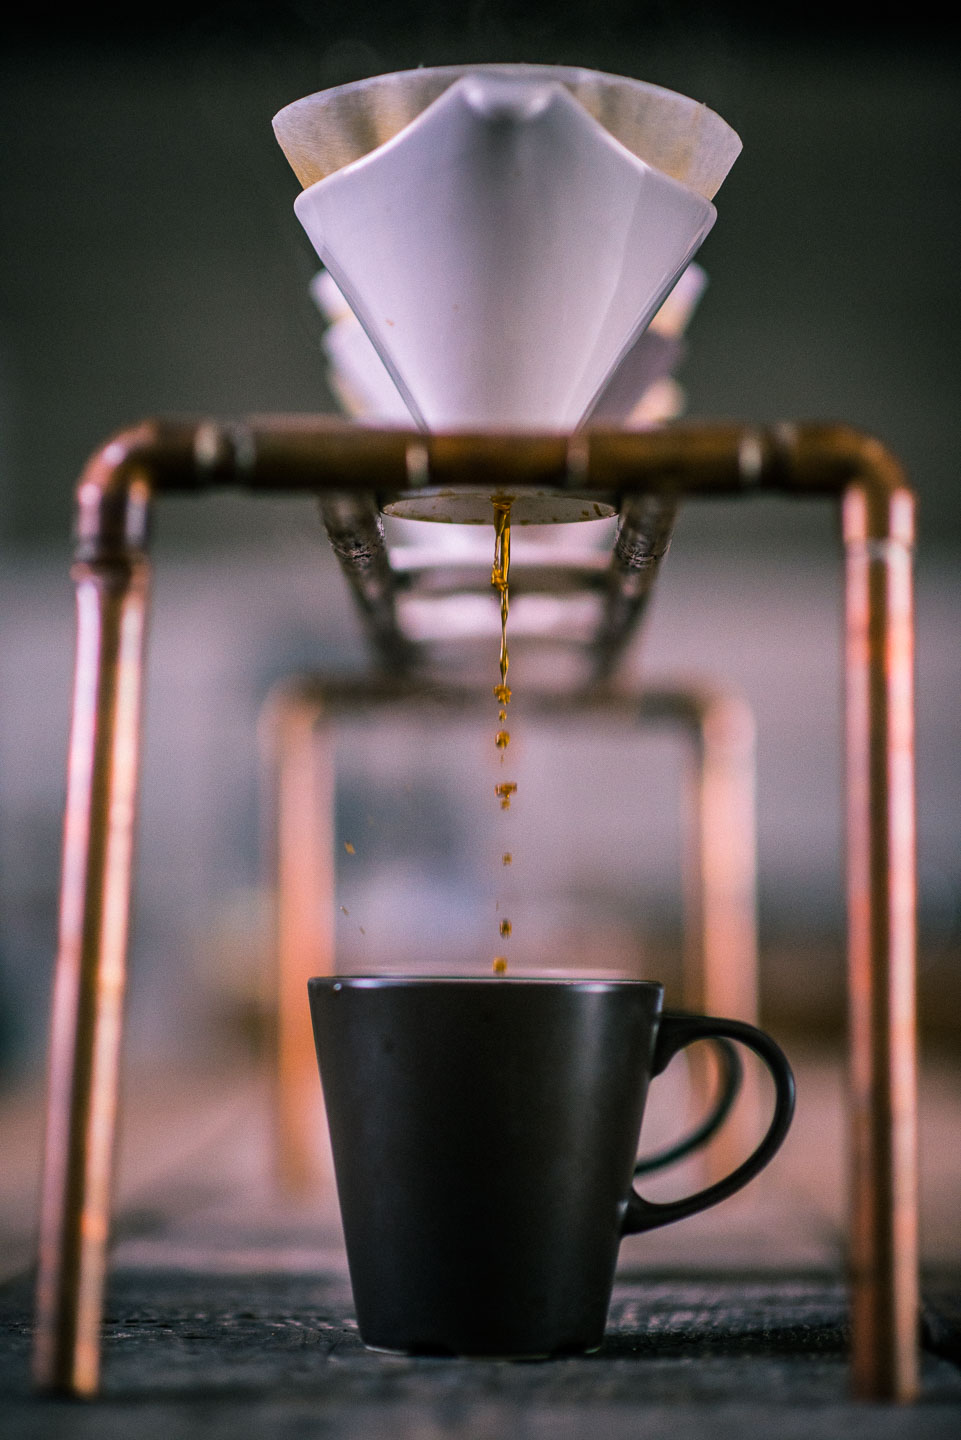 Chad_Kirkand_Photography_COFFEE-007